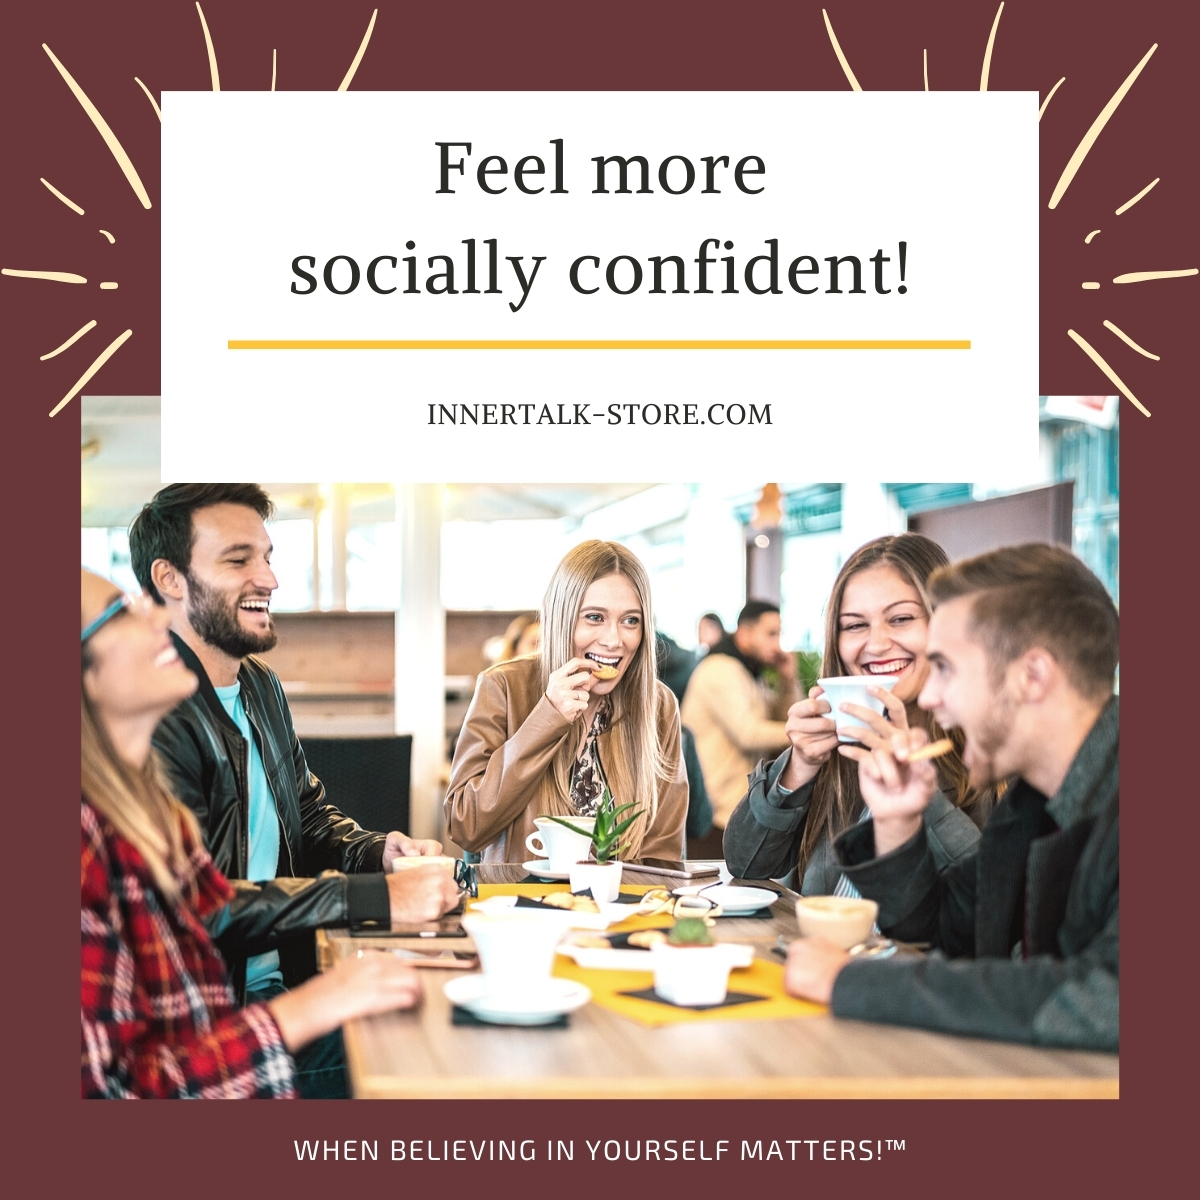 Relieving Social Anxiety